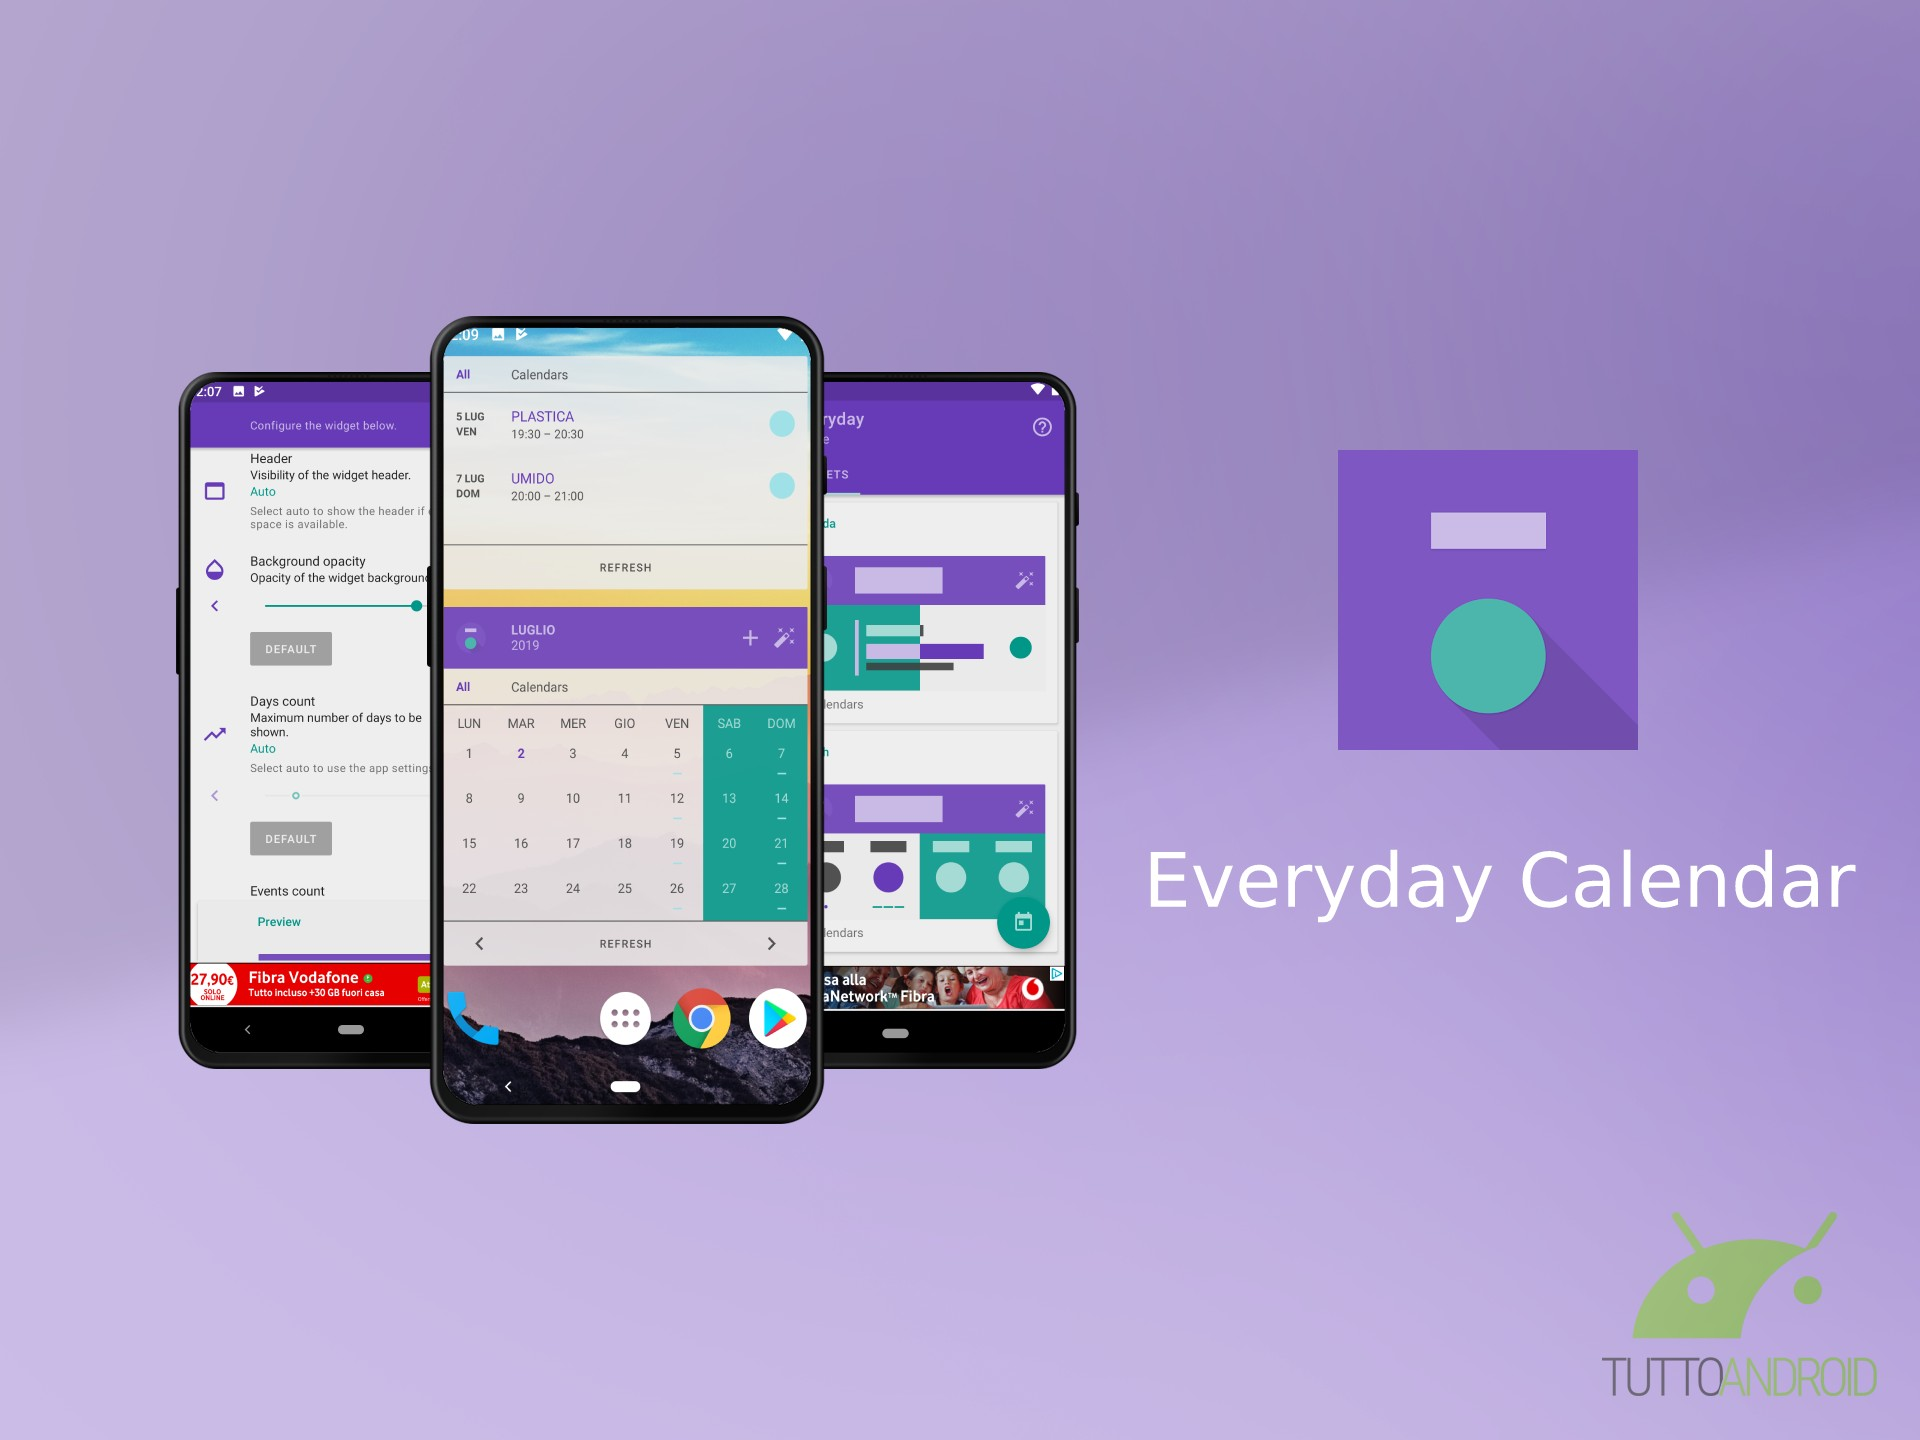 Tutto Il Calendario.E Arrivato Everyday Calendar Un Widget Agenda E Calendario